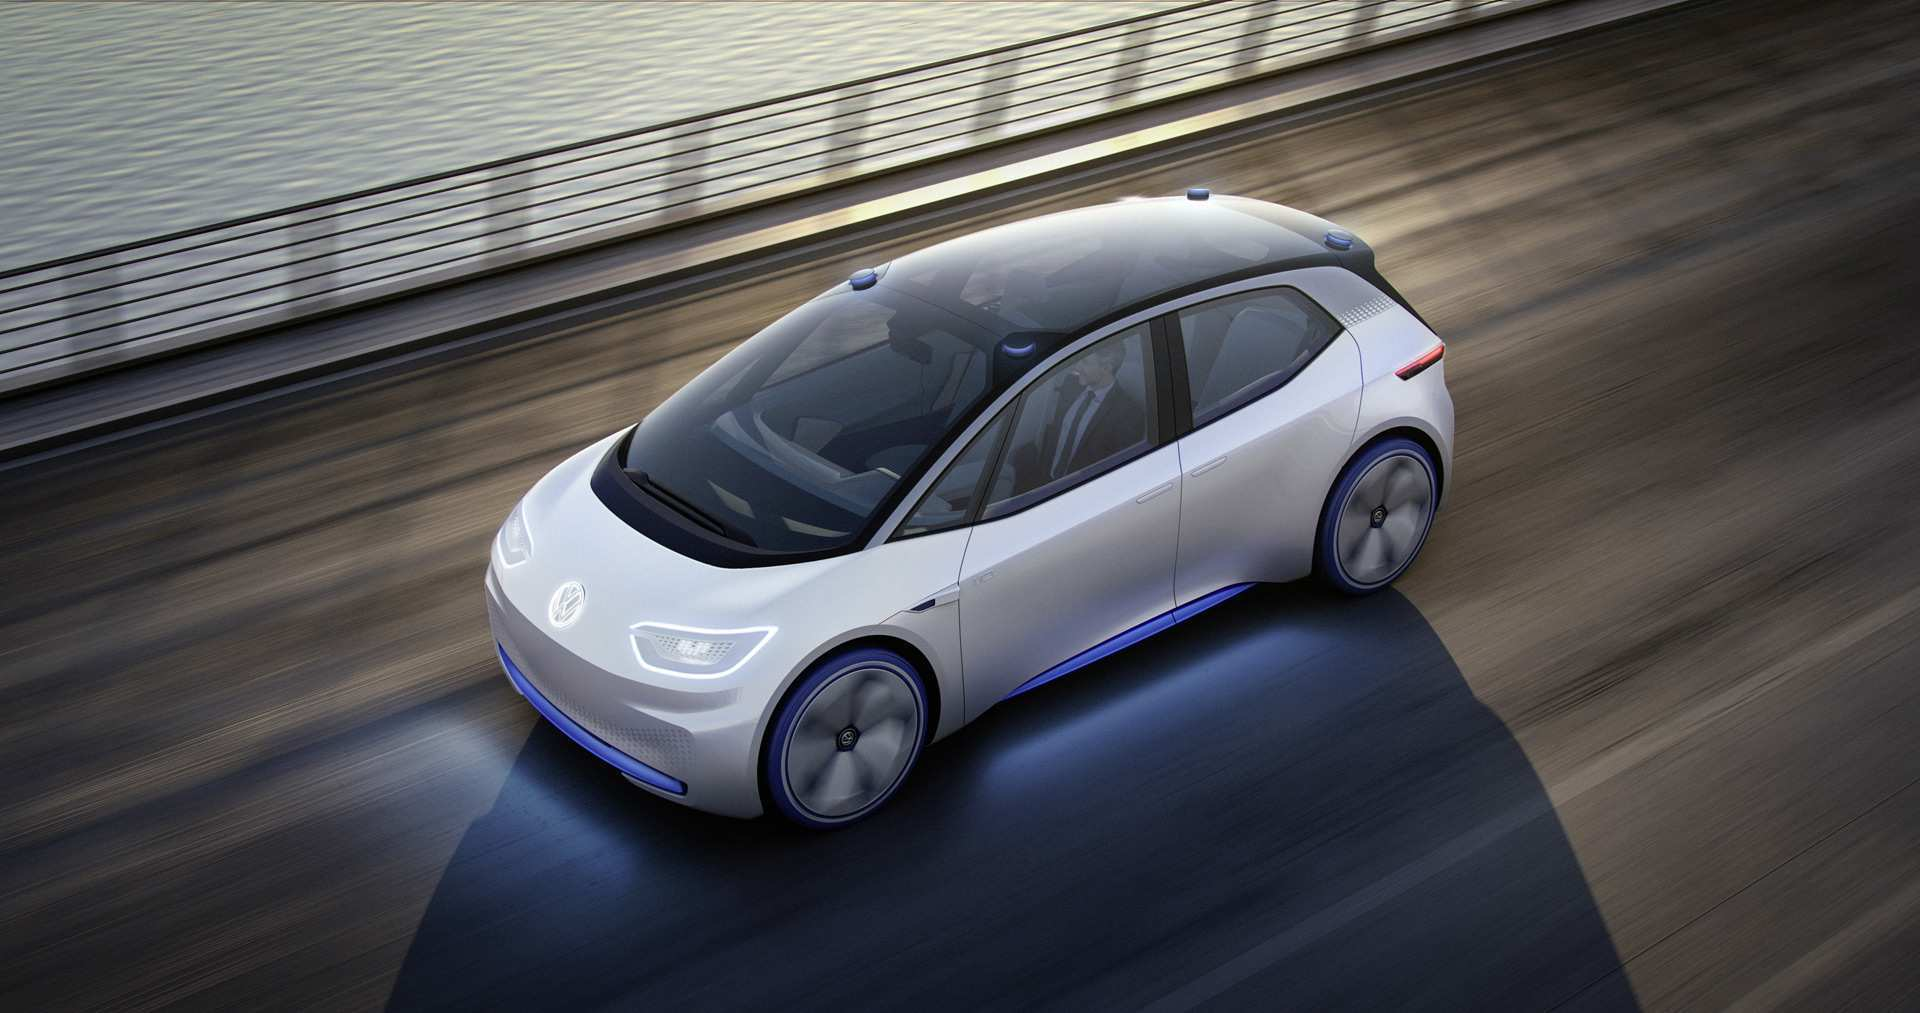 88 New Volkswagen Electric Car 2020 Spesification